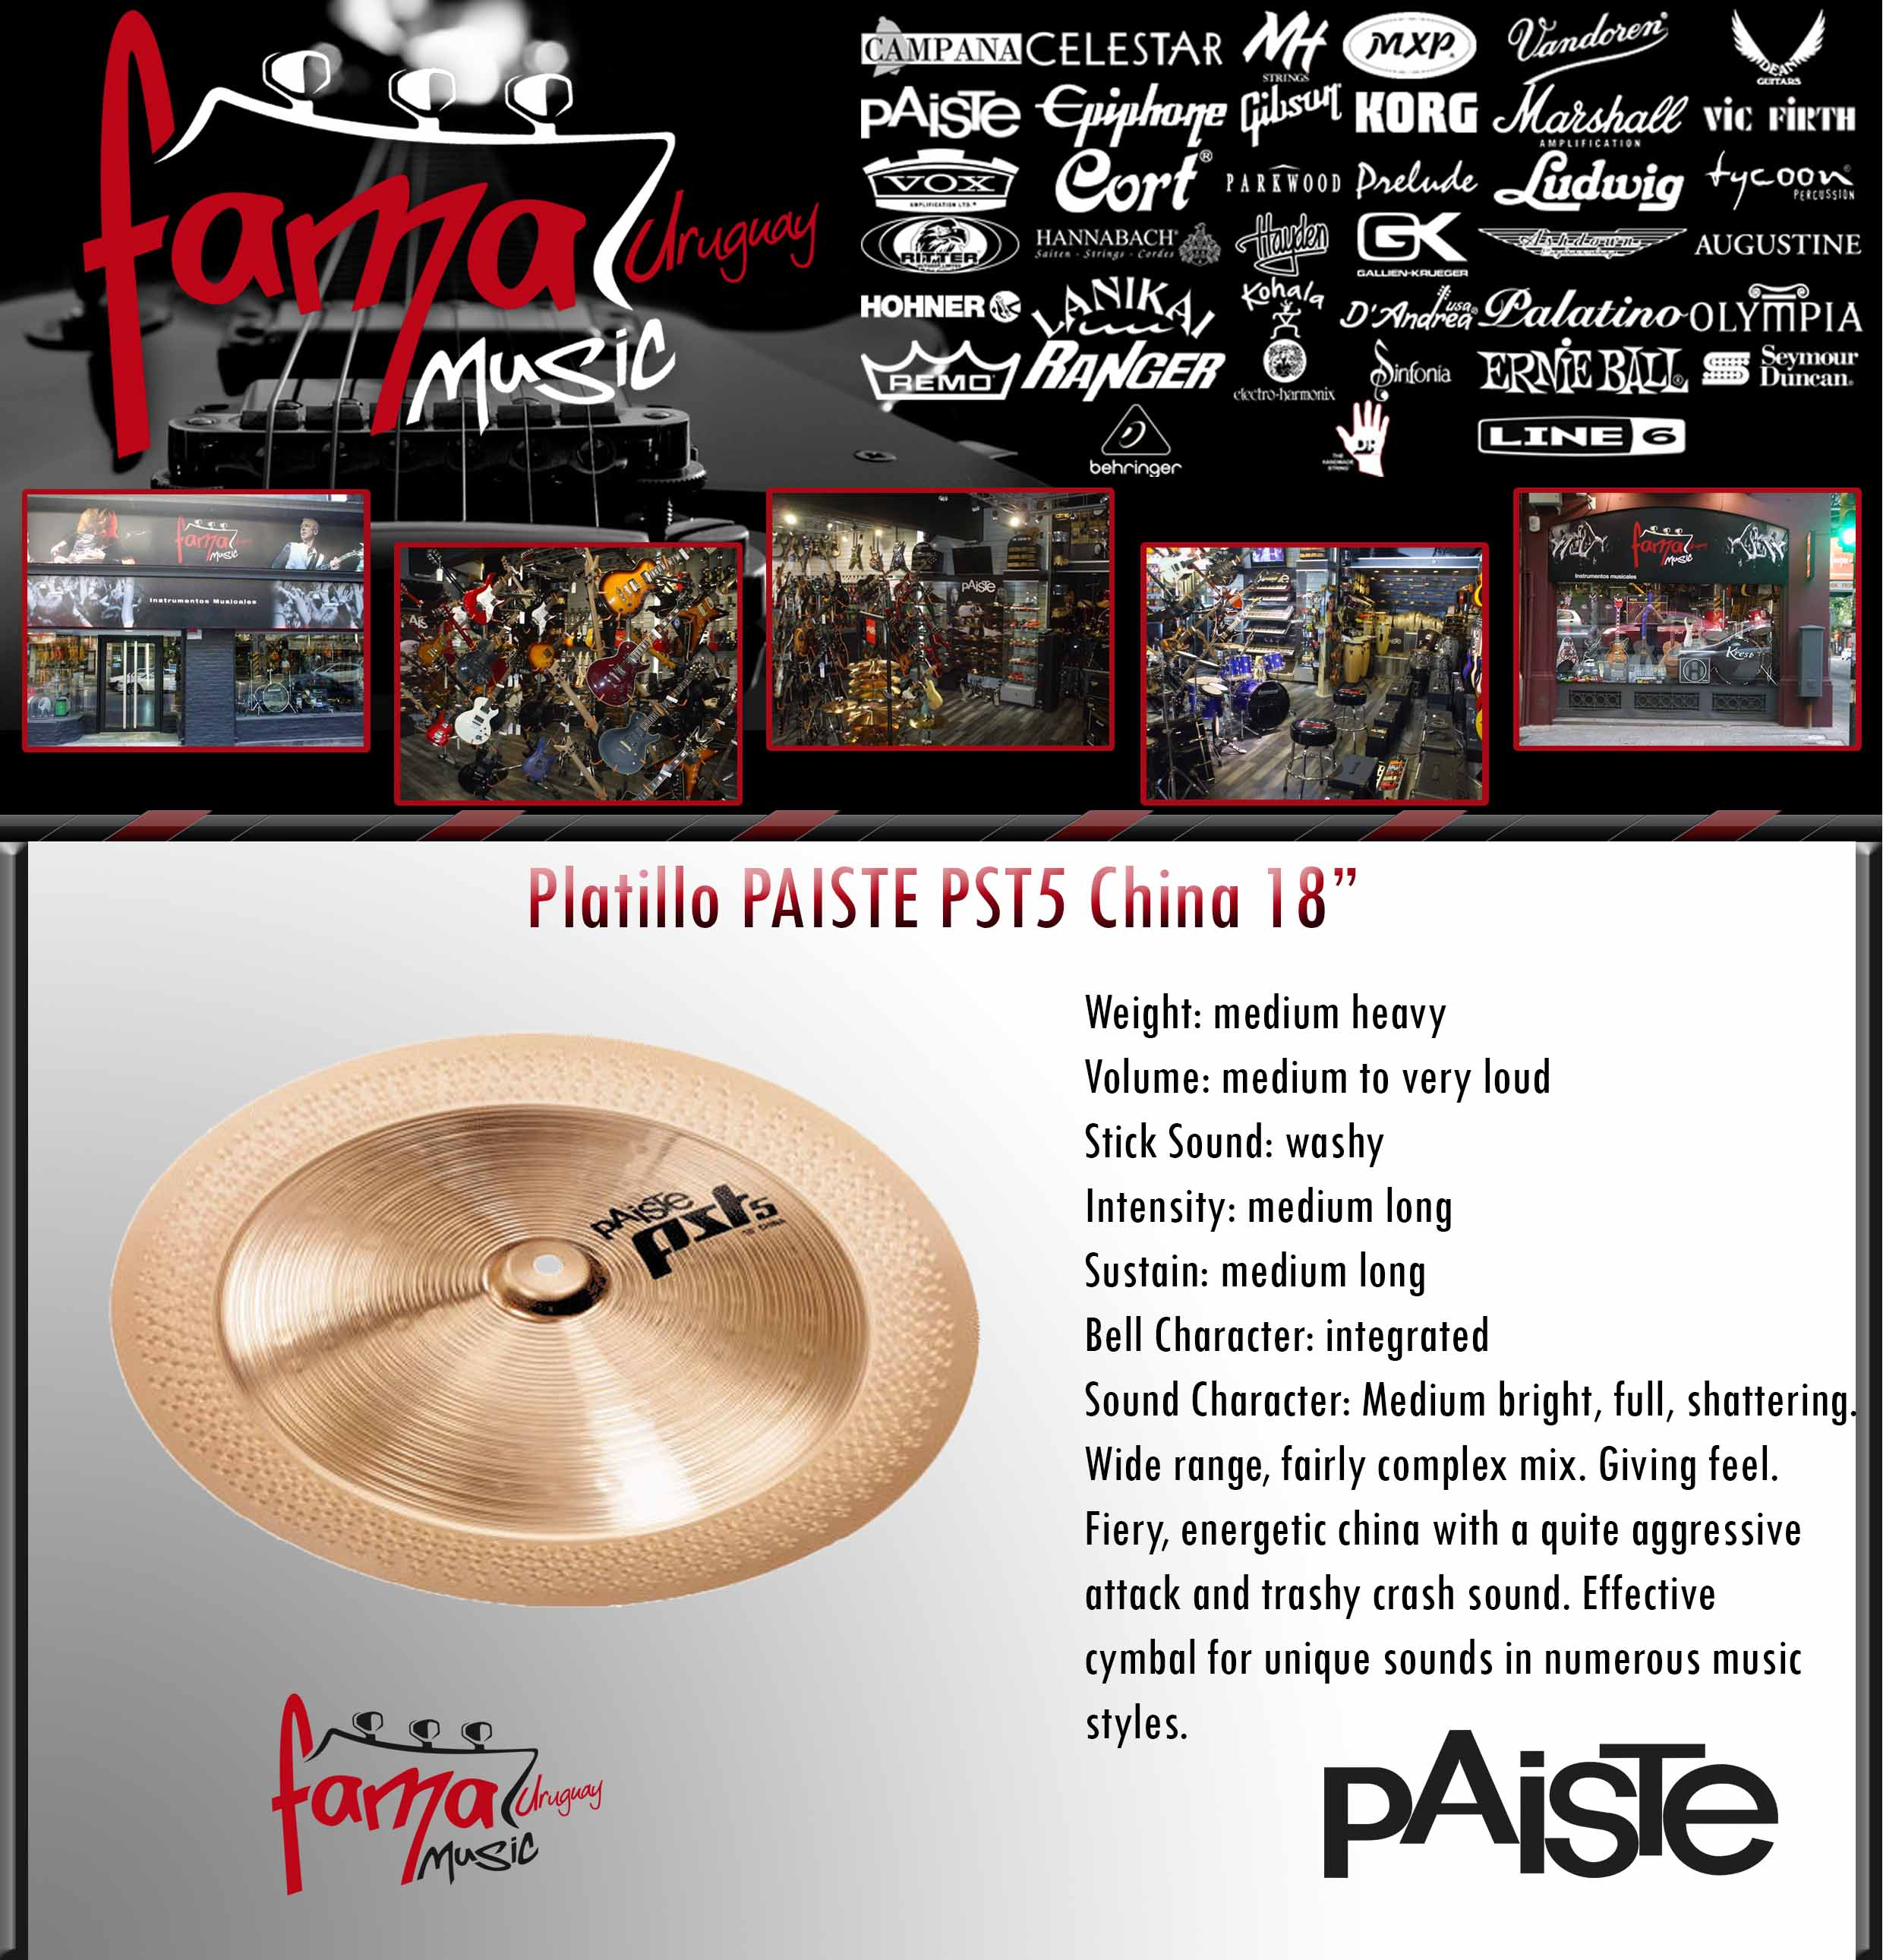 Platillo PAISTE PST5 China 18